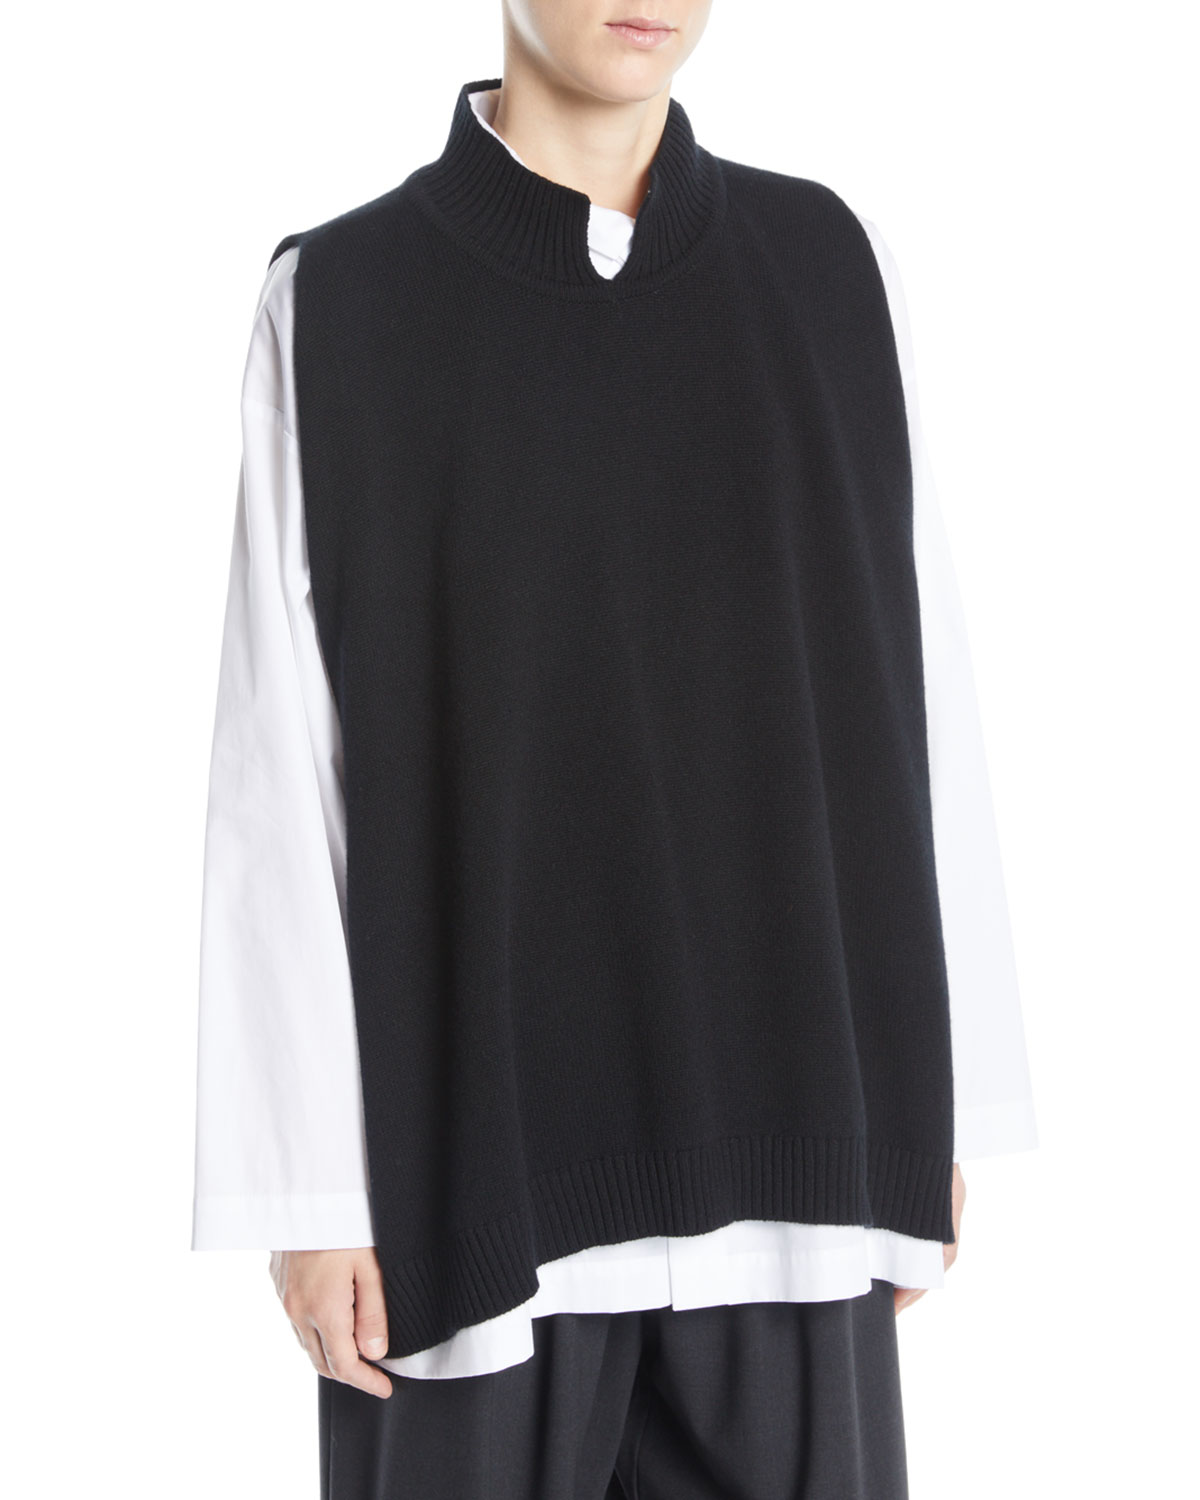 SLIT HIGH-NECK SLEEVELESS A-LINE CASHMERE SWEATER